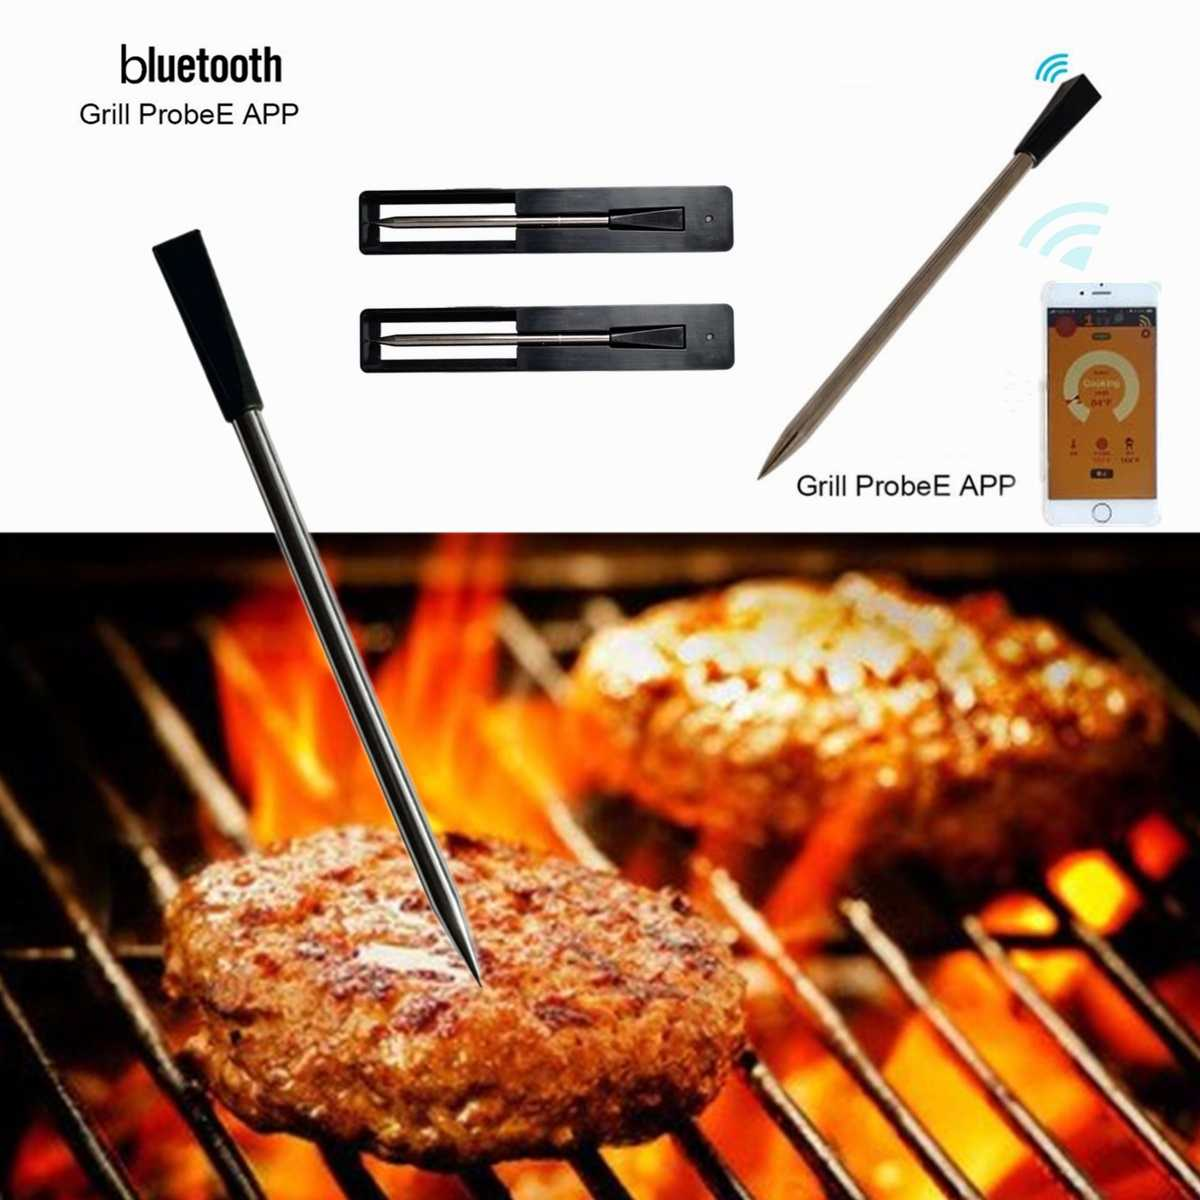 Real Time Probe Meat Thermometer Kitchen Wireless Cooking BBQ Food Thermometer for bluetooth Oven Grill Thermometer Probe